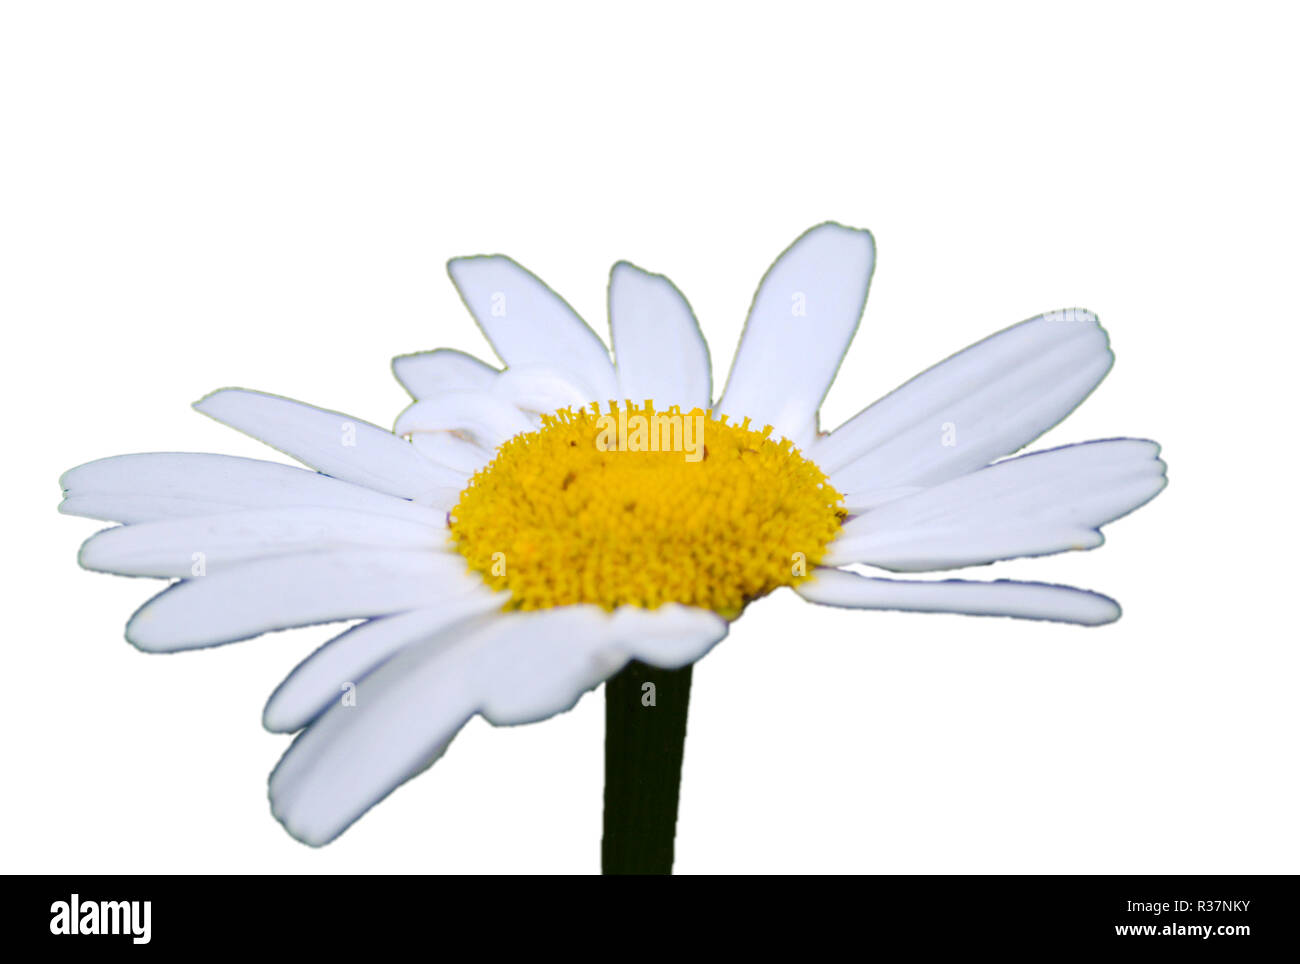 White aster flower on a neutral background - Stock Image